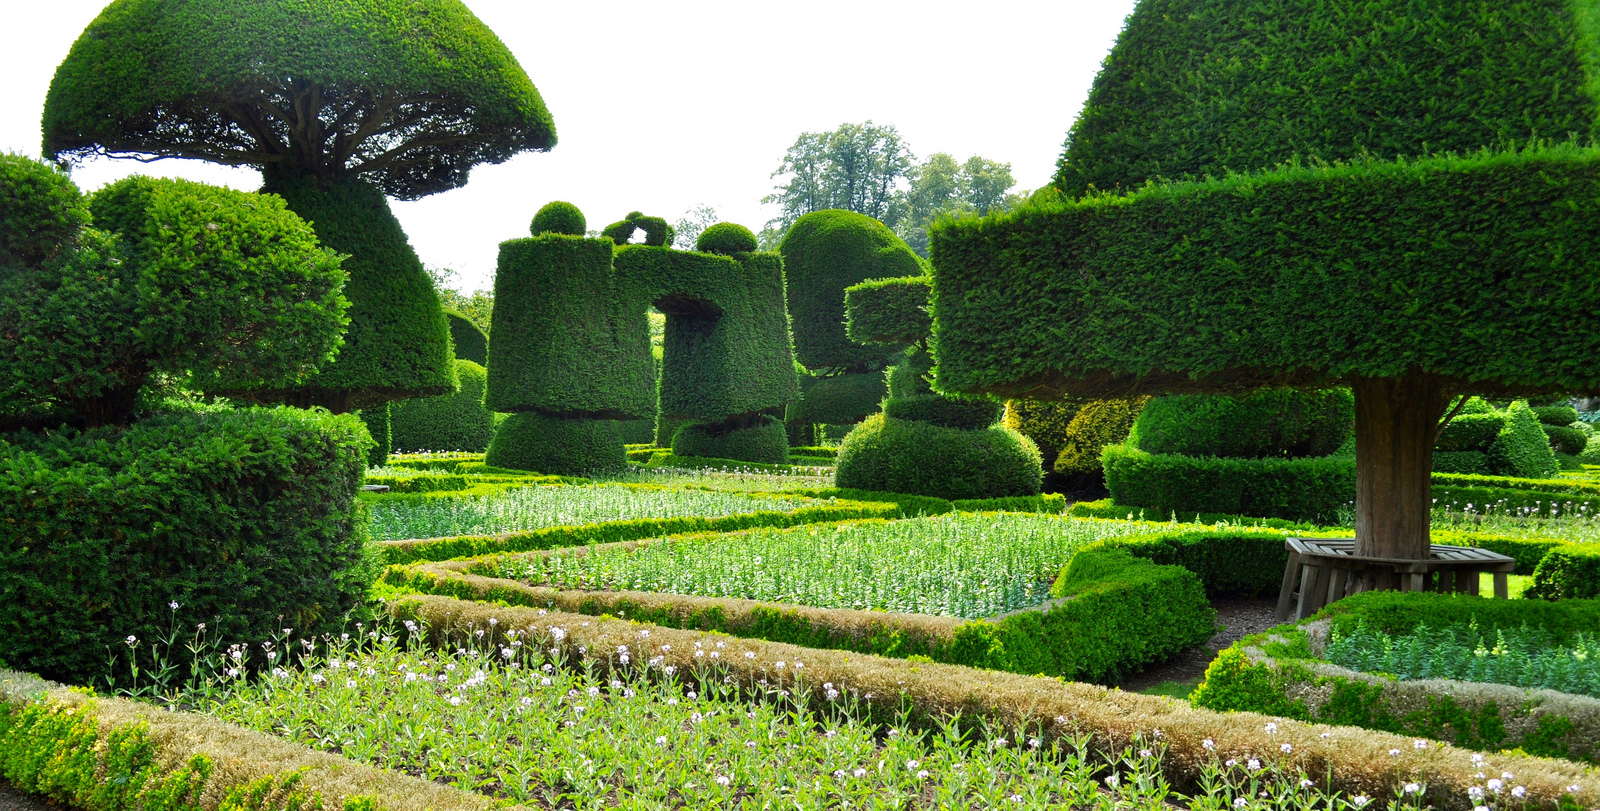 Gardens Images stunning beauty of levens hall garden, uk [9 pics] | i like to